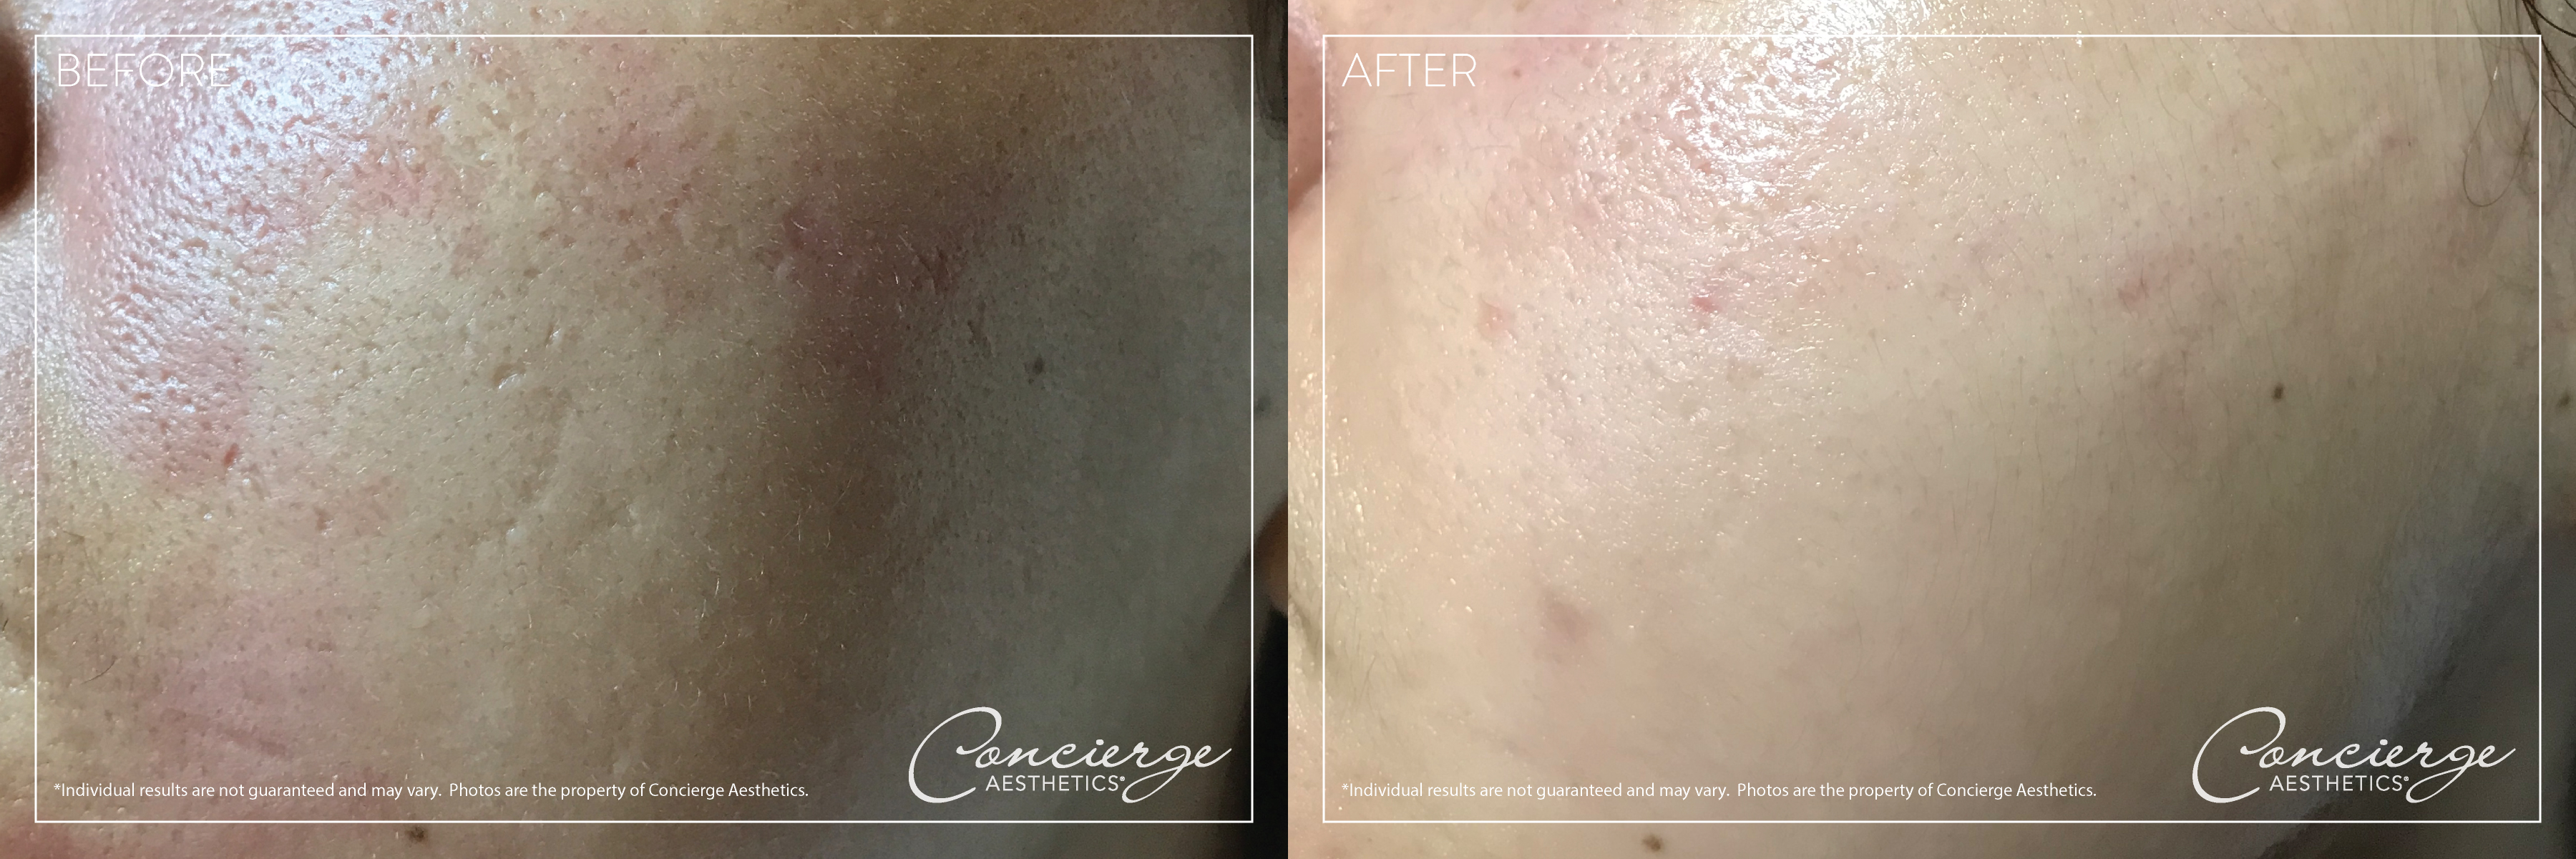 Dermapen - Before and After - Concierge Aesthetics, Irvine